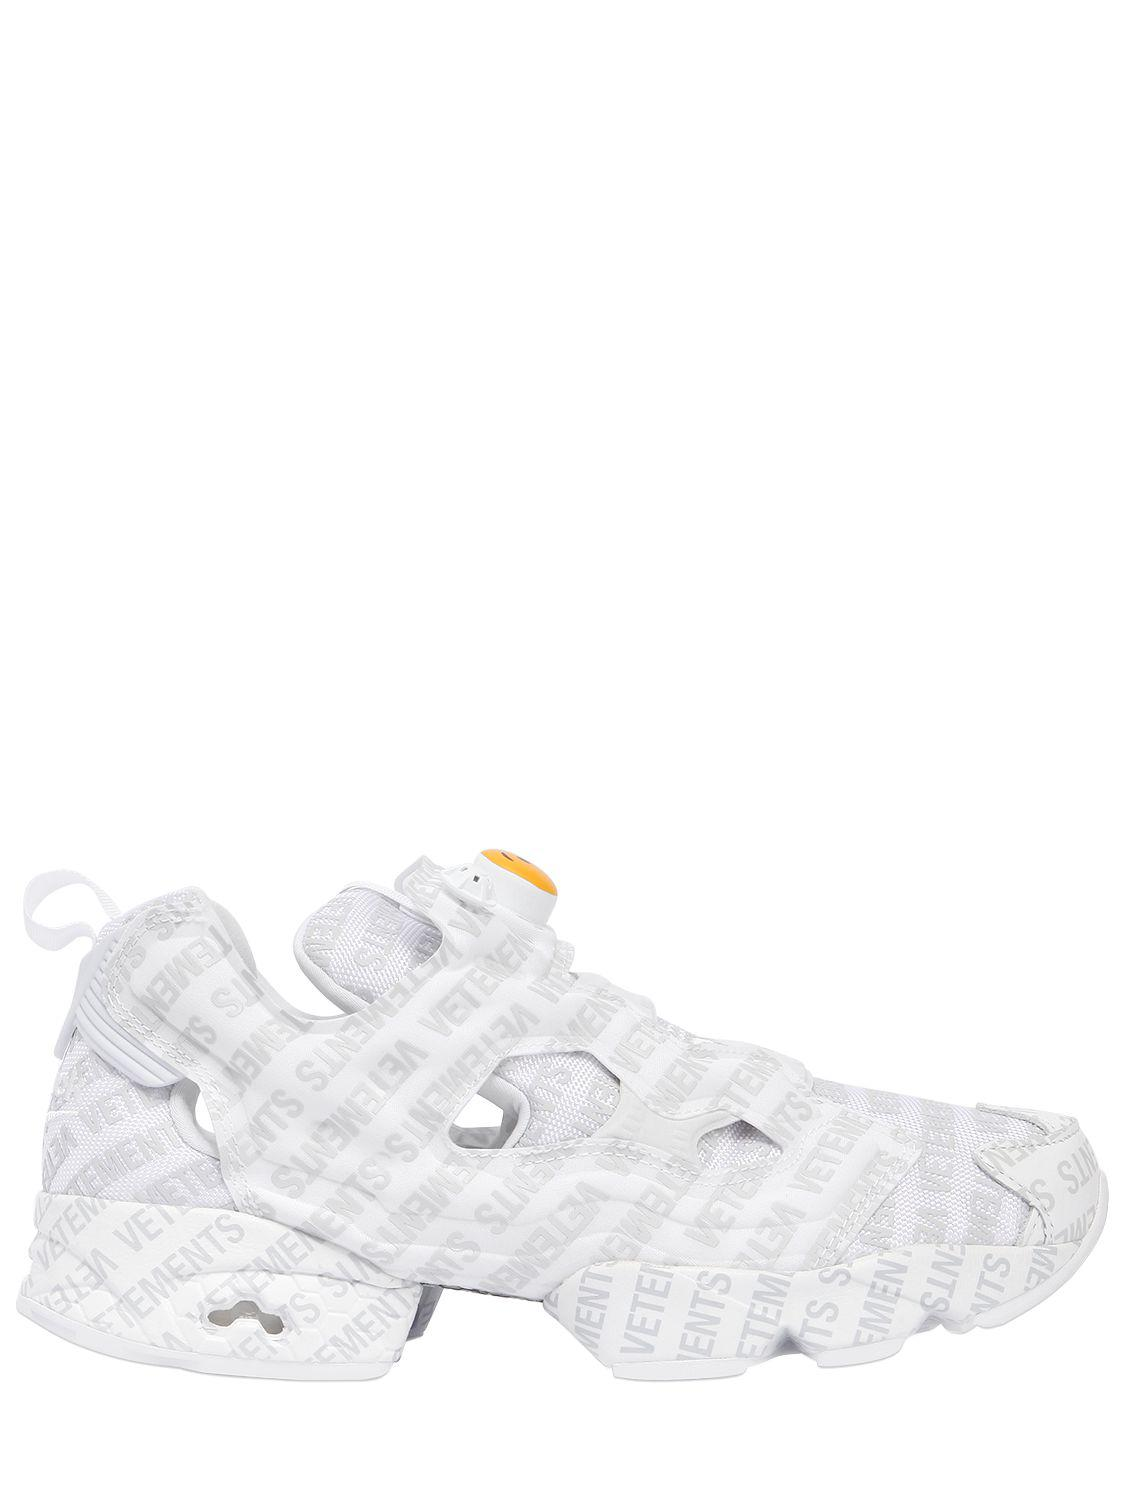 f6eb7dbac661ce Lyst - Vetements Reebok Logo Instapump Fury Sneakers in White for ...